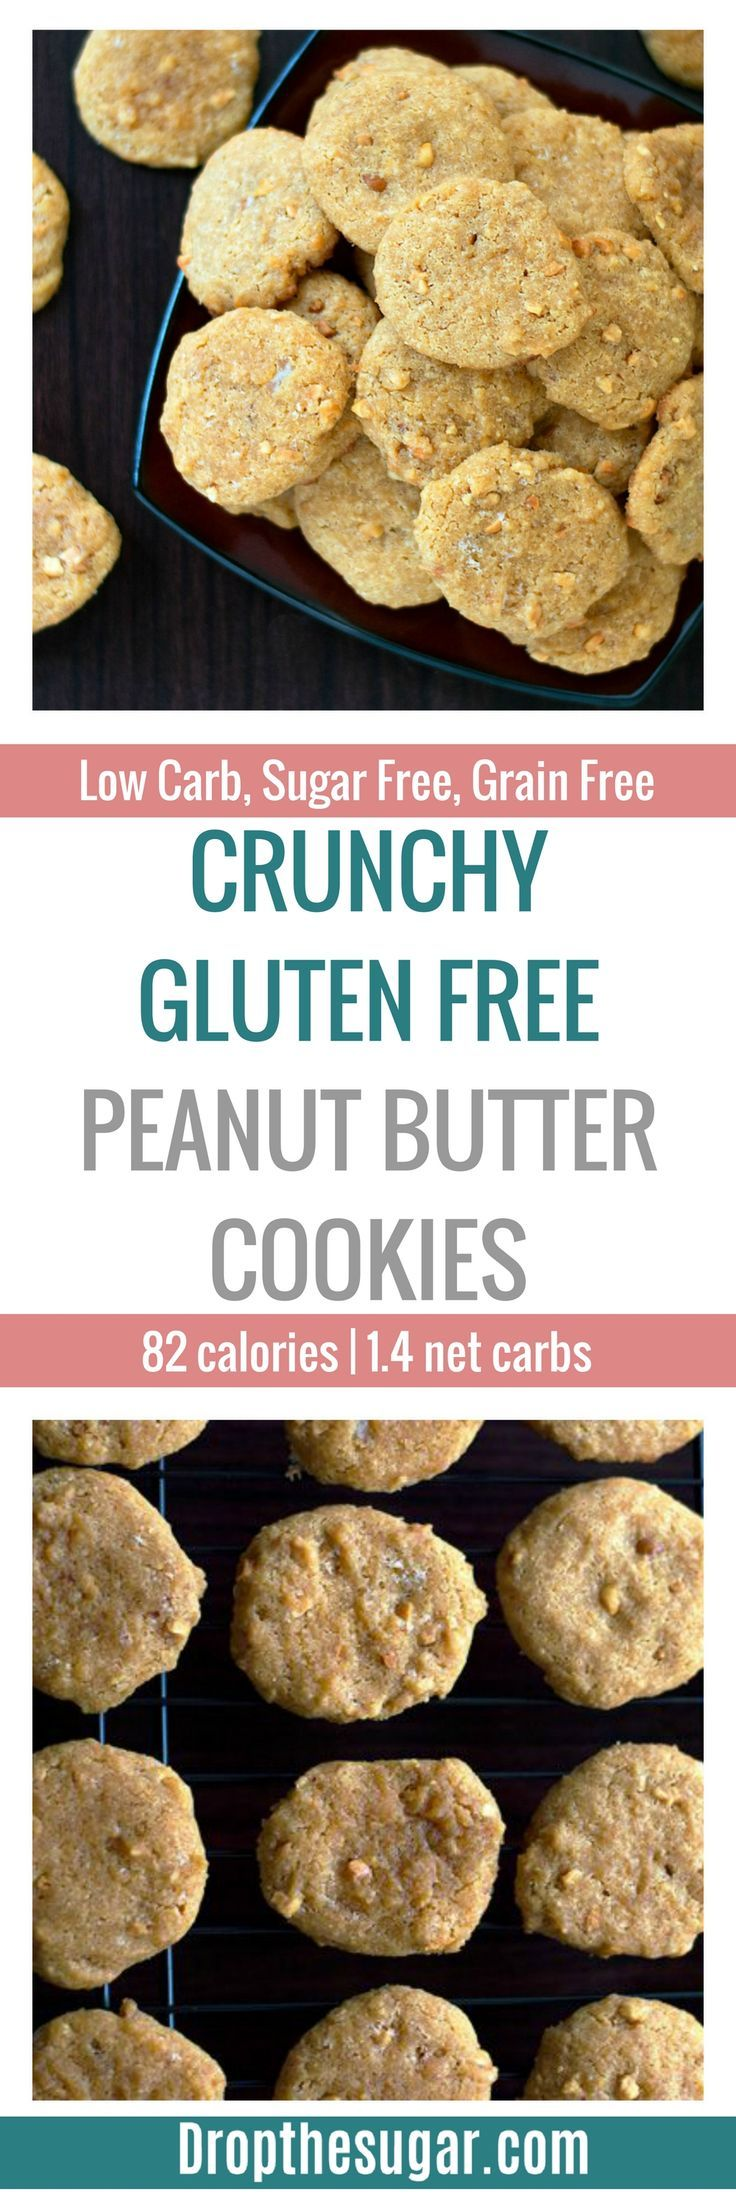 Gluten Free Peanut Butter Cookies | a low carb peanut butter cookie ...